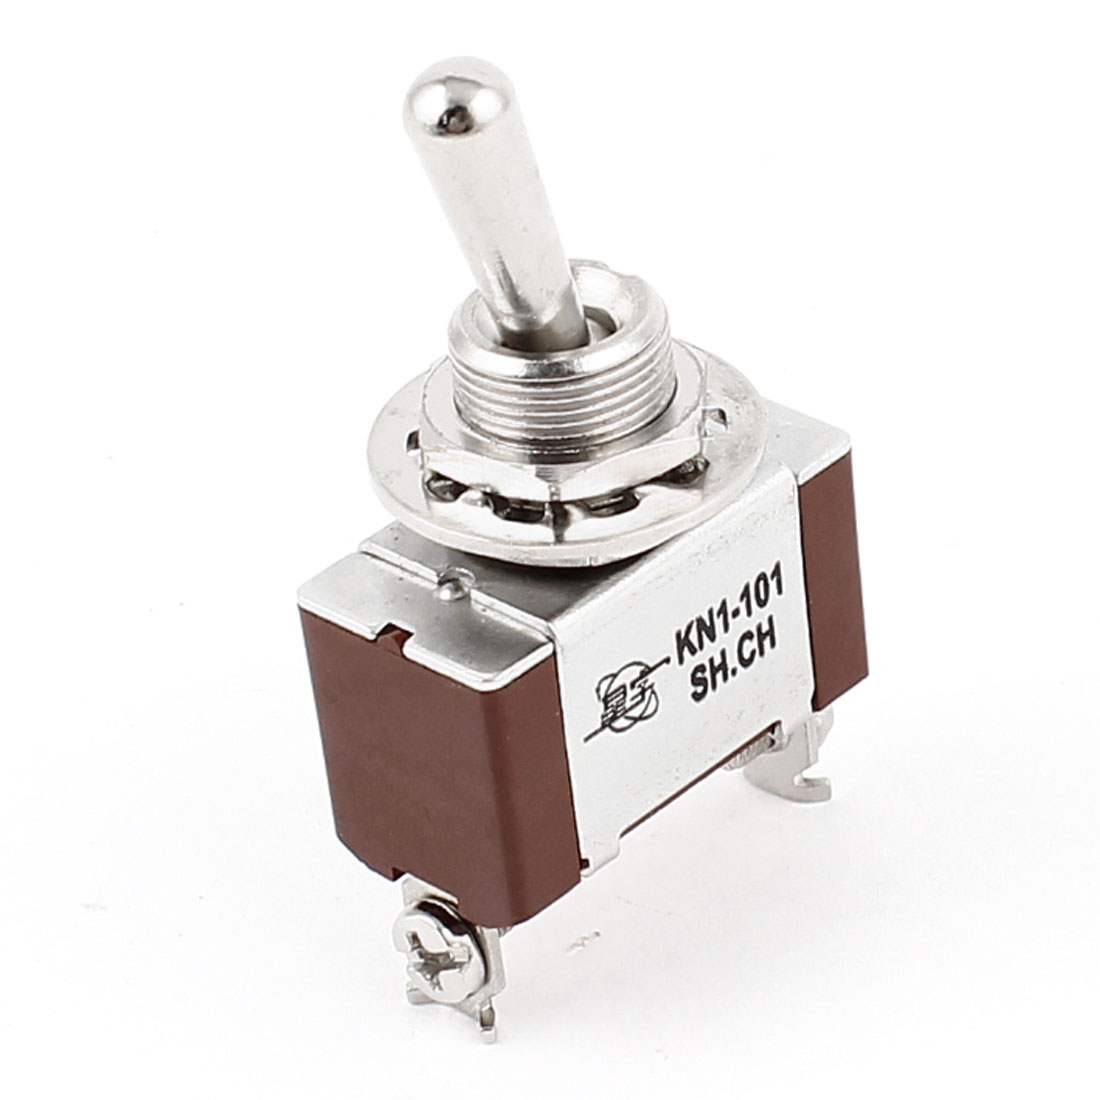 KN1-101 AC 250V 8A SPST 2 Positions Toggle Switch for Switching Light